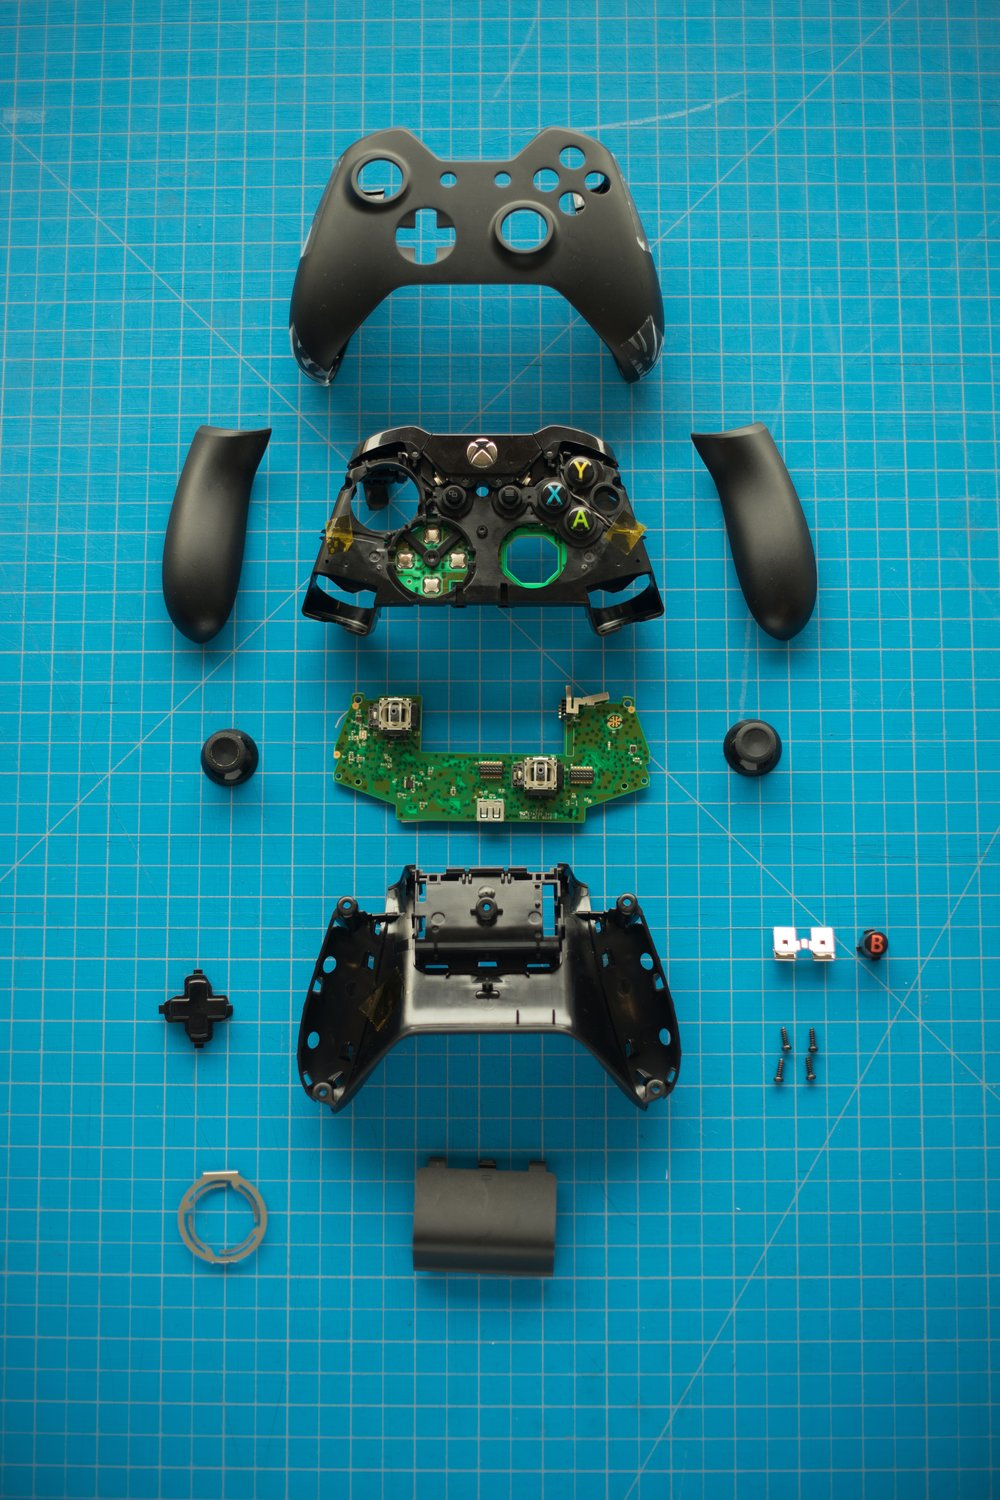 Xbox-Controller-Disassembled.jpg